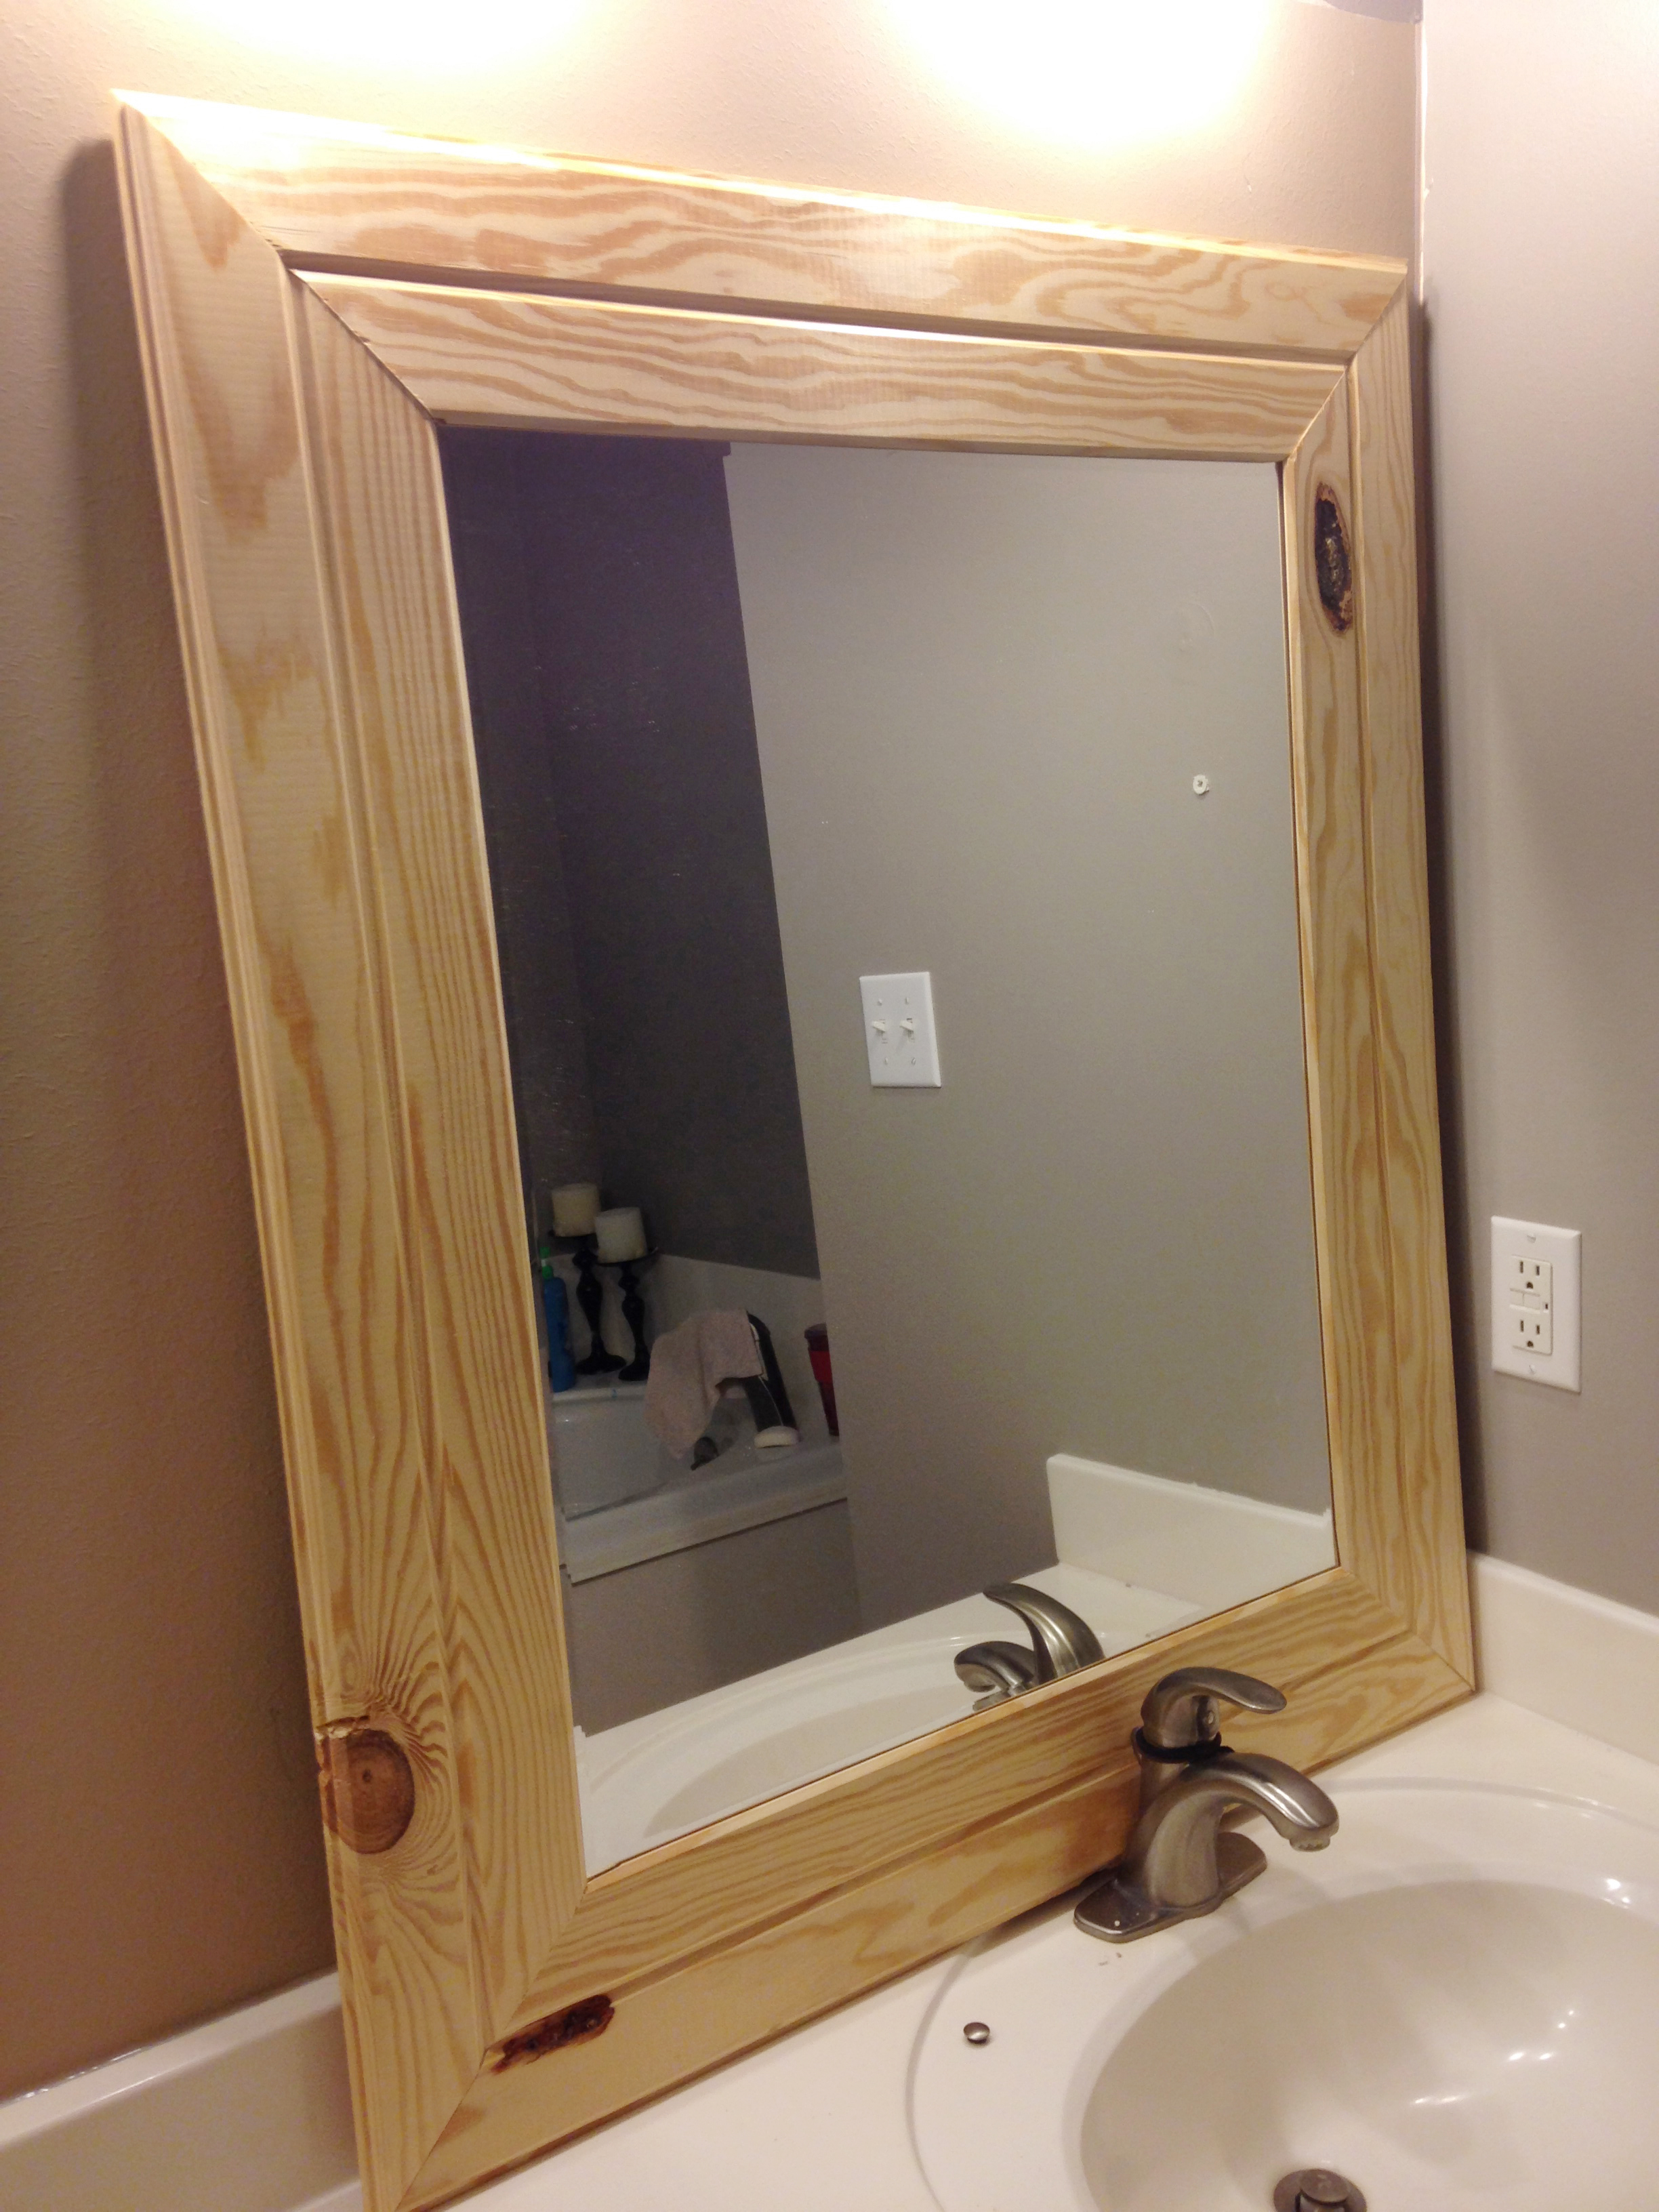 build diy wood mirror frame diy pdf do it yourself bed frame plans rare77yje - Do It Yourself Picture Frames